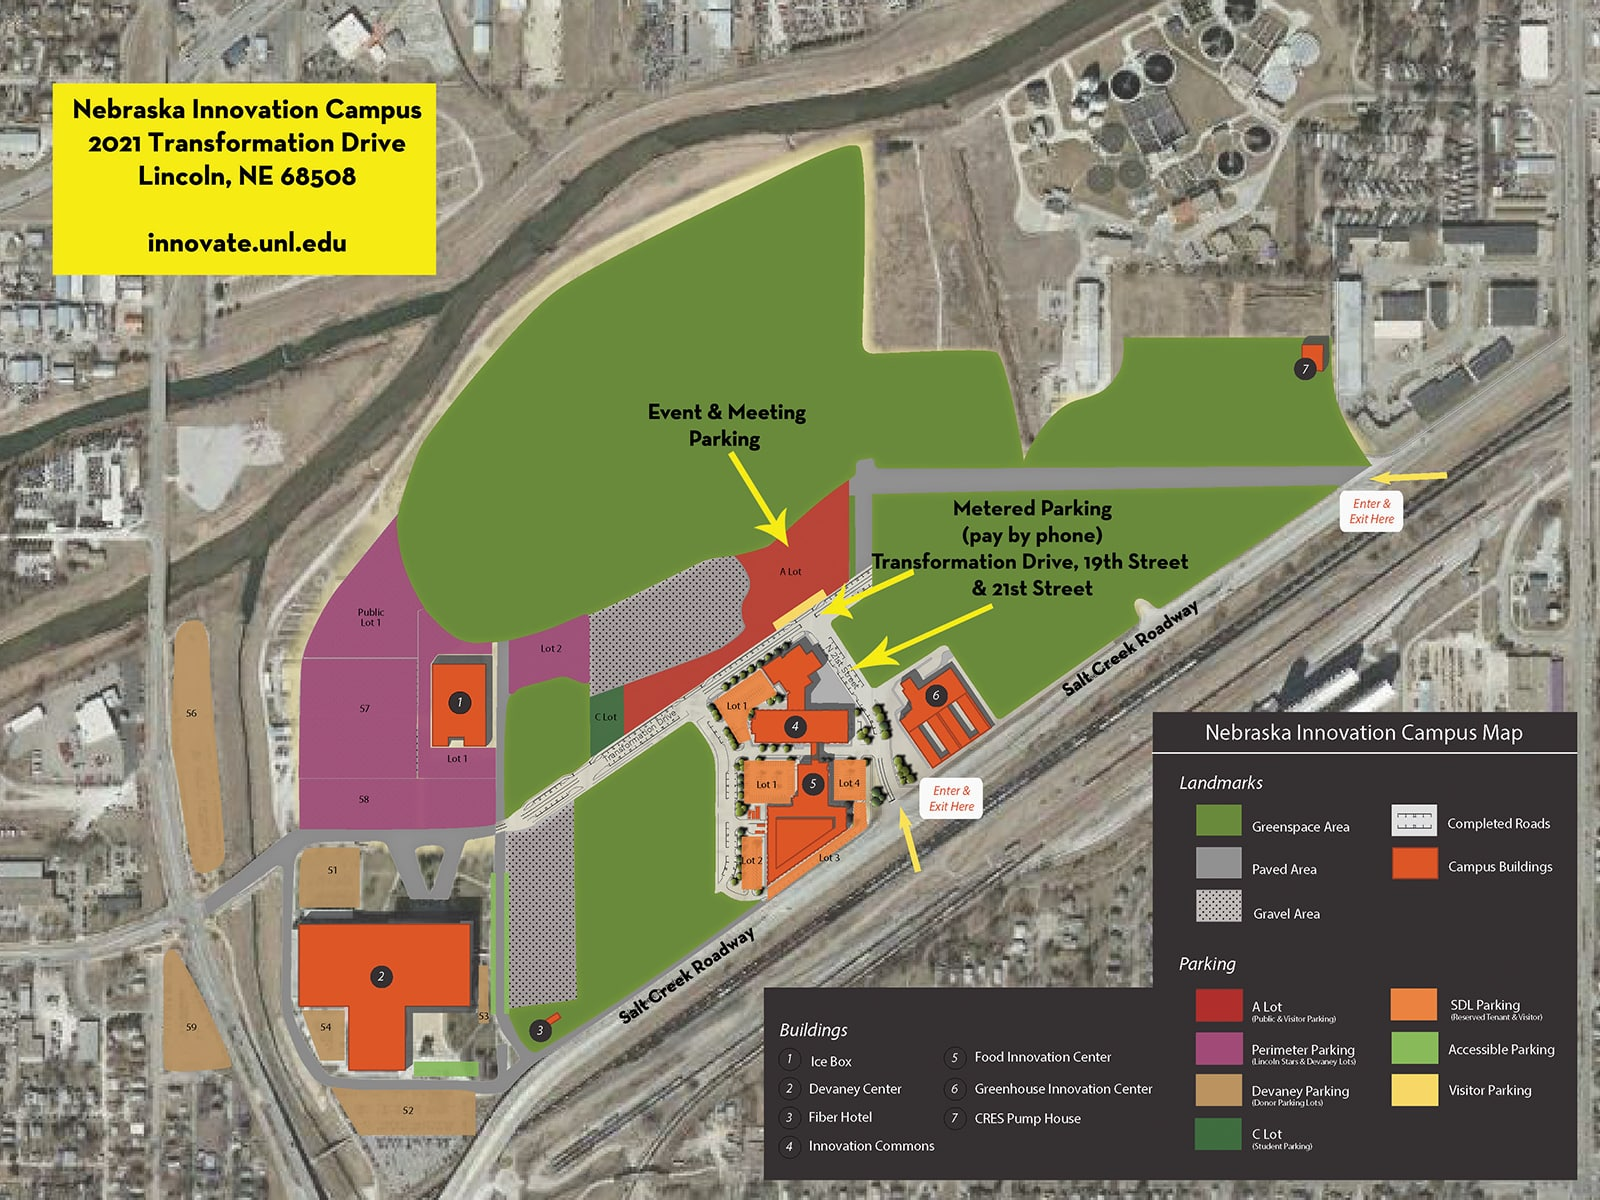 Parking map for Nebraska Innovation Campus